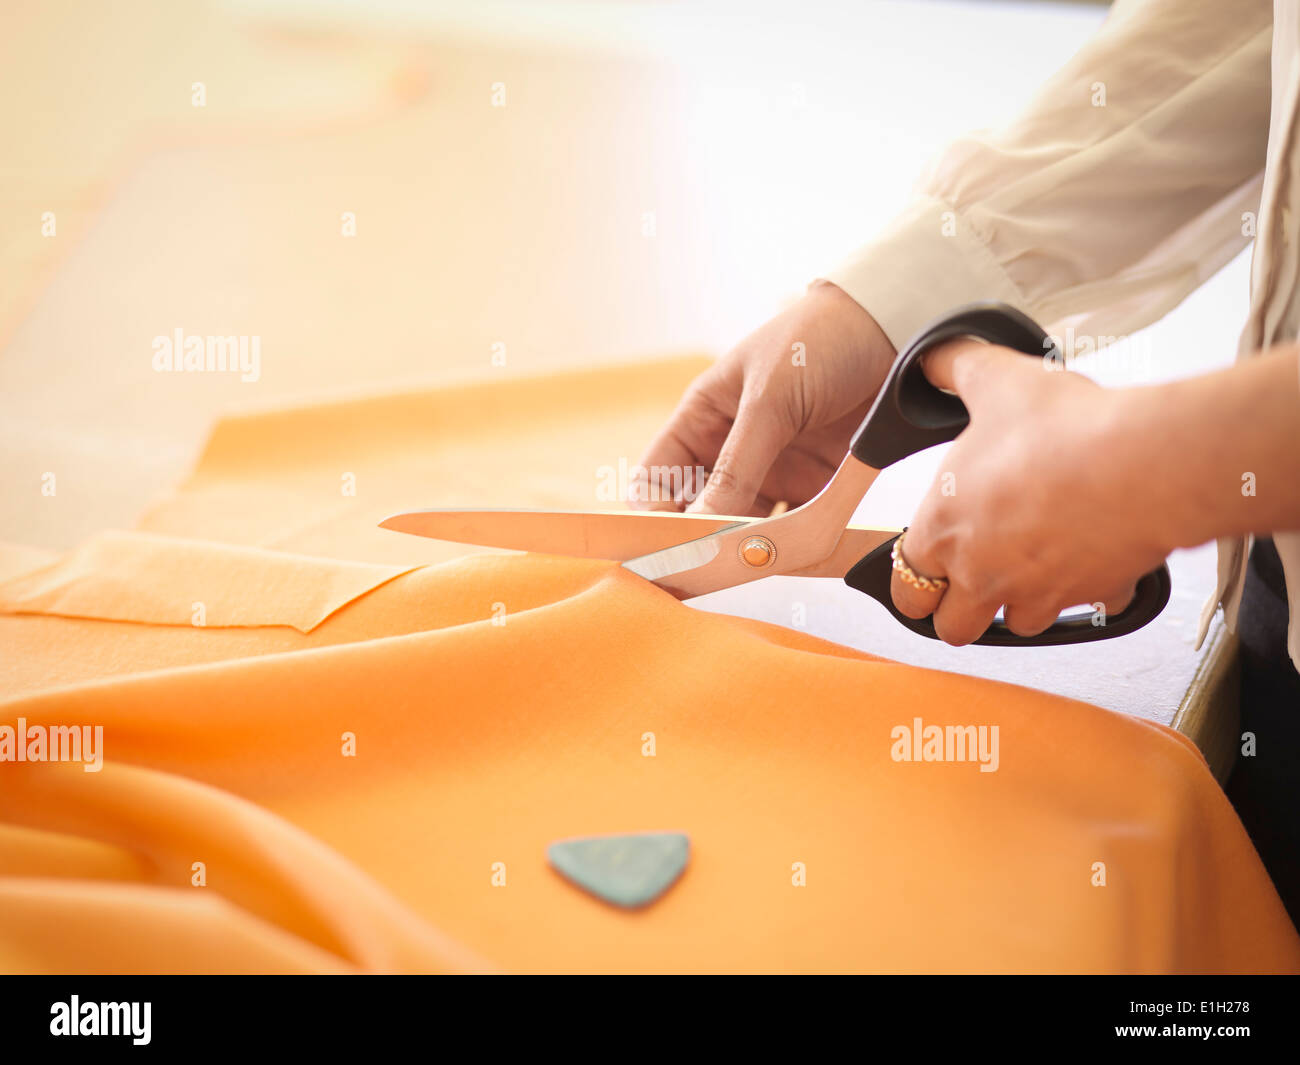 Fashion designer cutting cloth in fashion design studio, close up - Stock Image